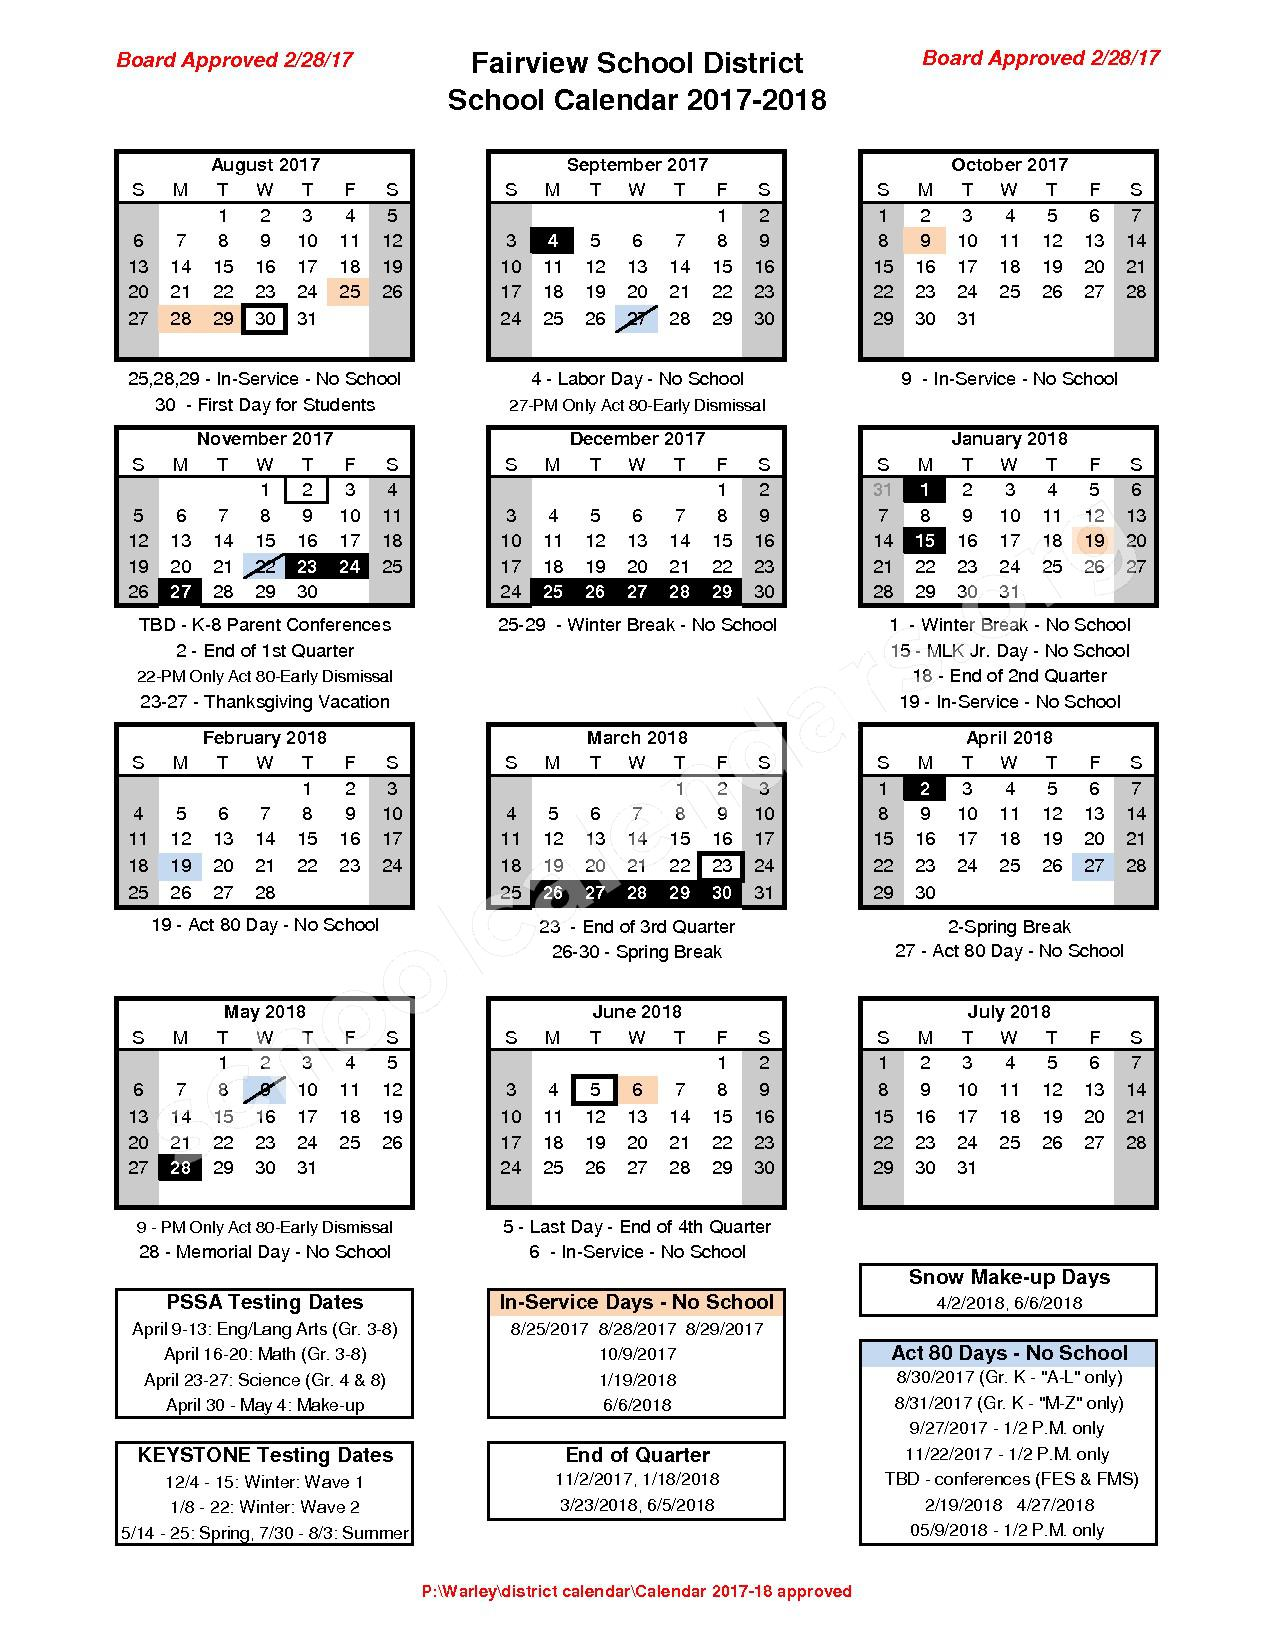 2017 - 2018 School Calendar – Fairview School District – page 1